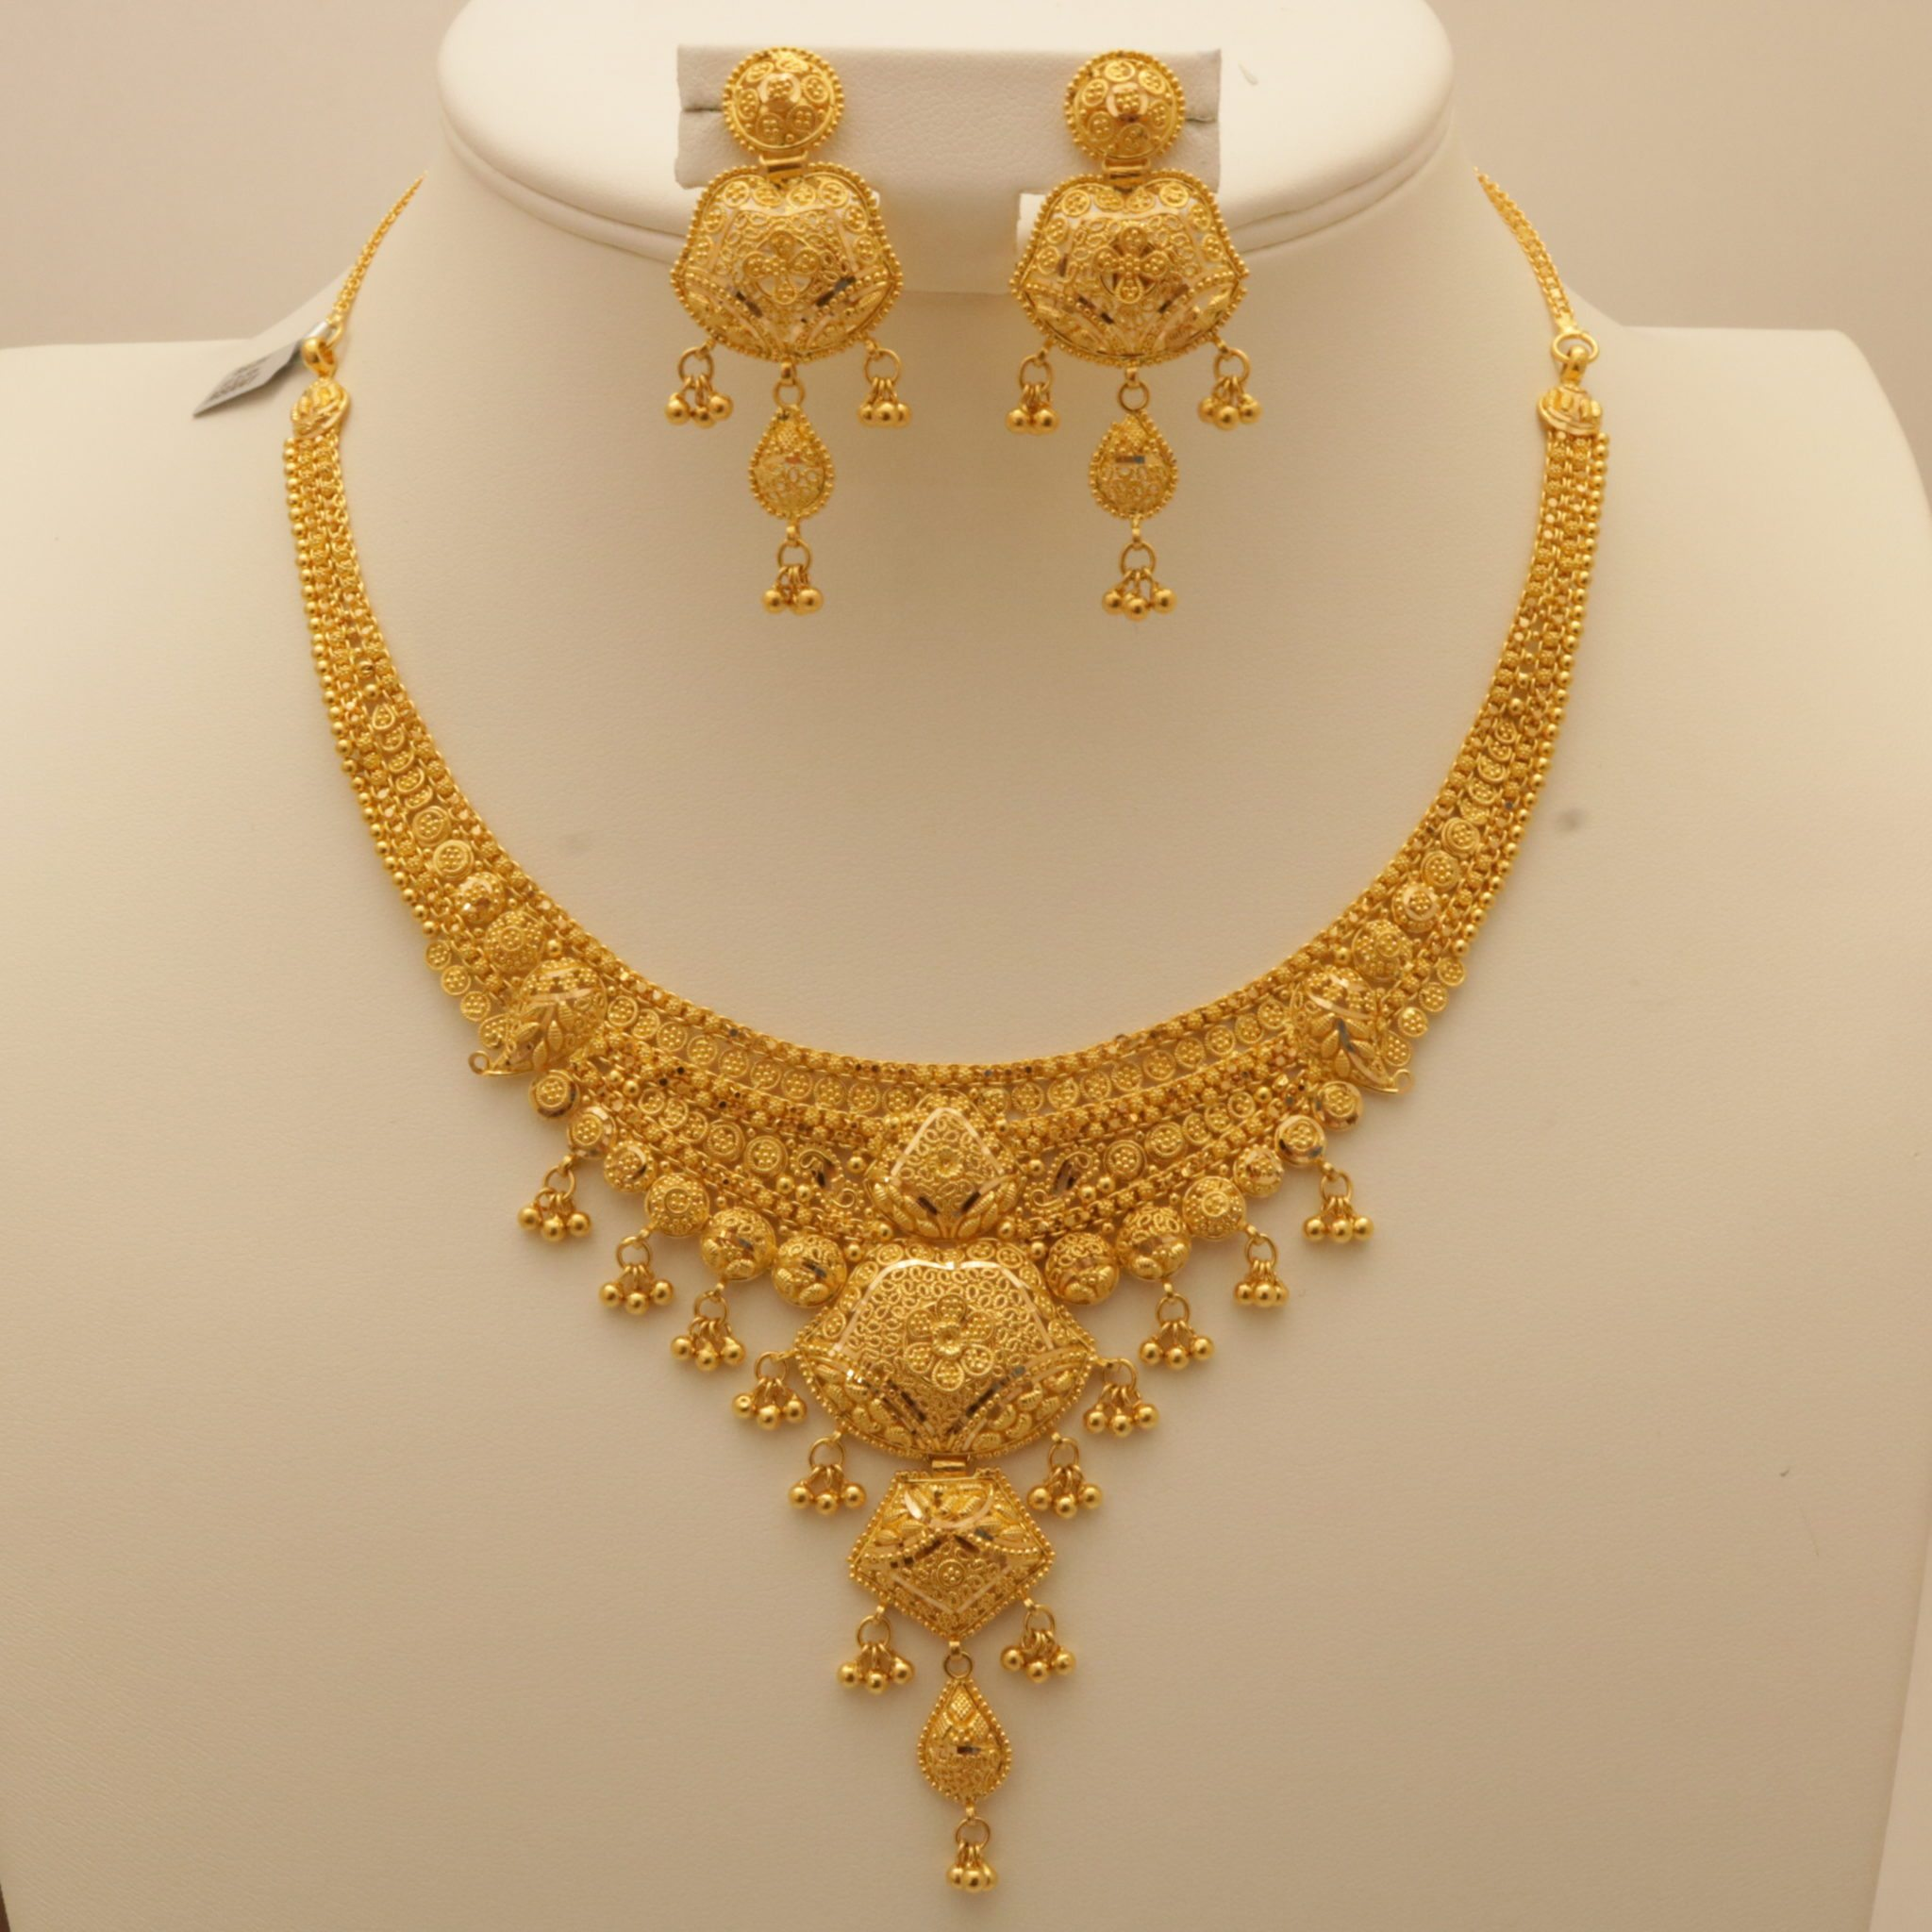 jewellery store indian jewelry banner necklace jewelers gold to buy totaram online collection temple